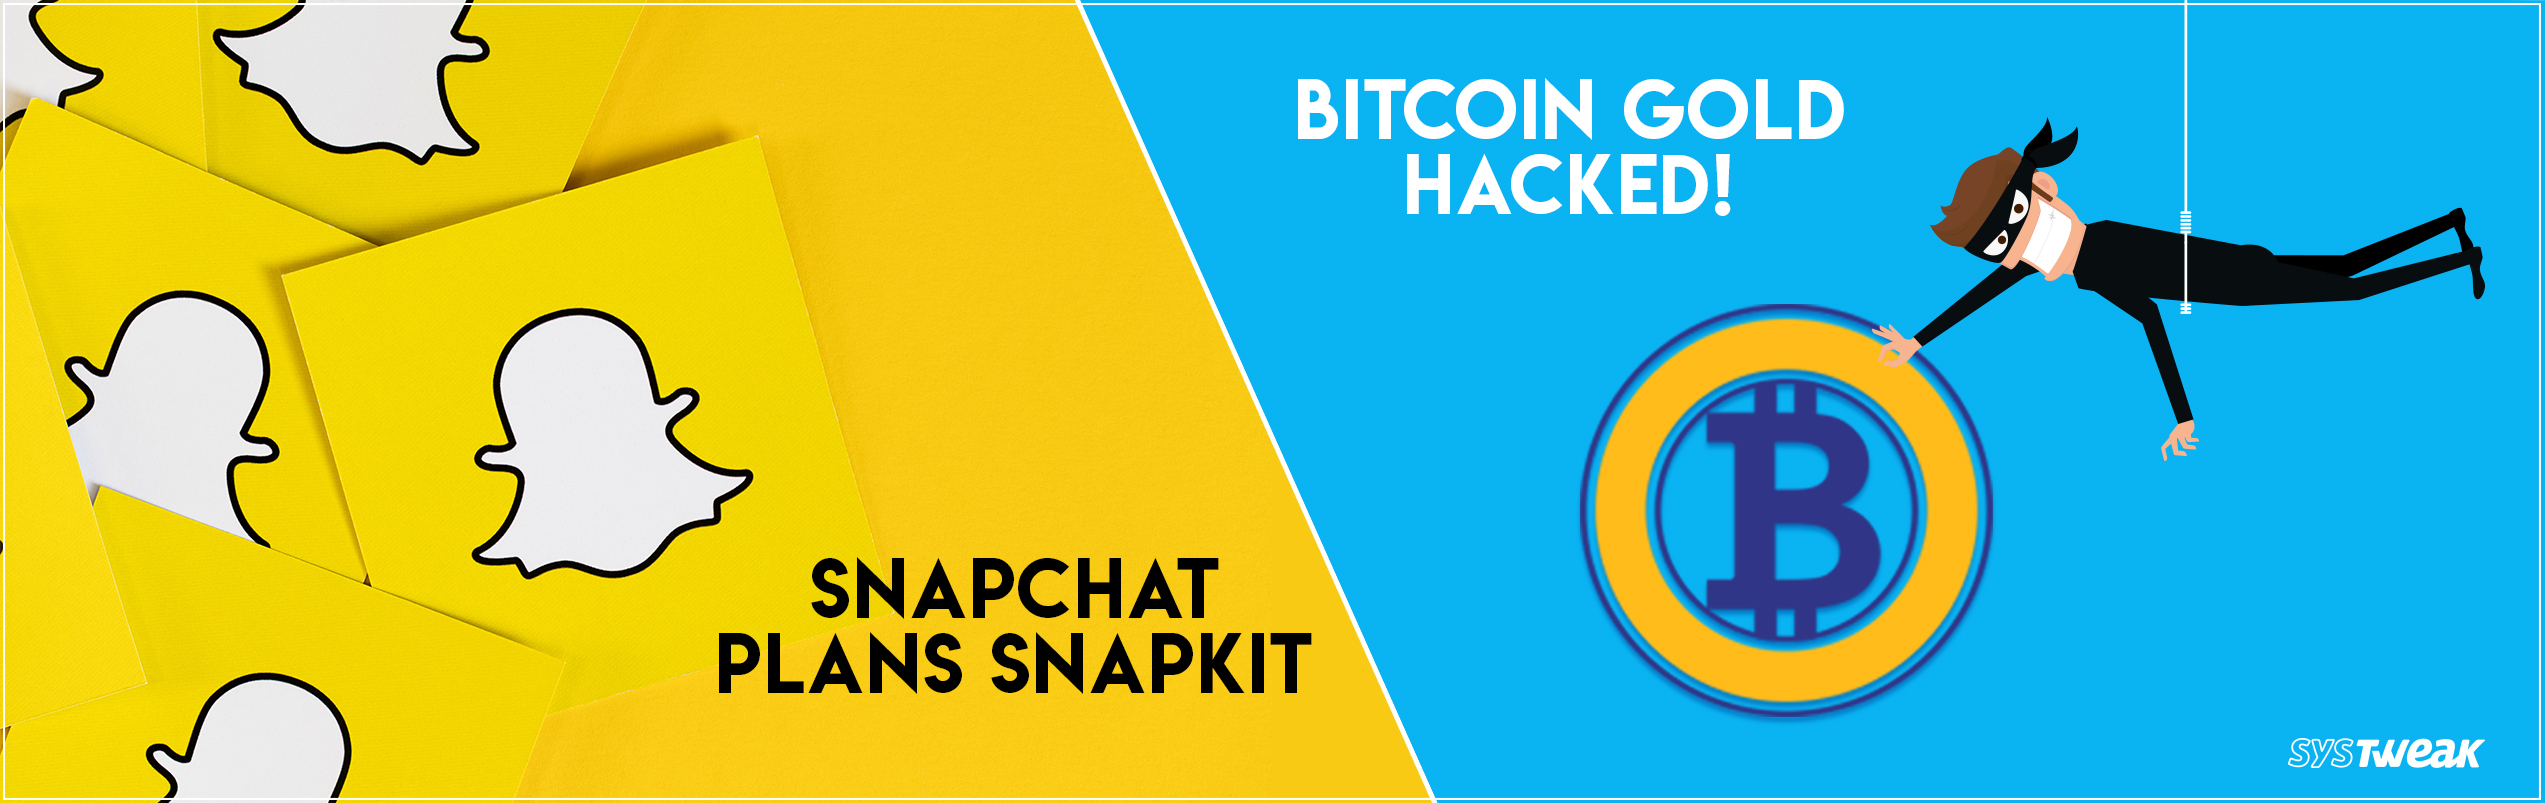 Newsletter: Snapchat Plans 'SnapKit' & Bitcoin Gold Faces 51% Attack!